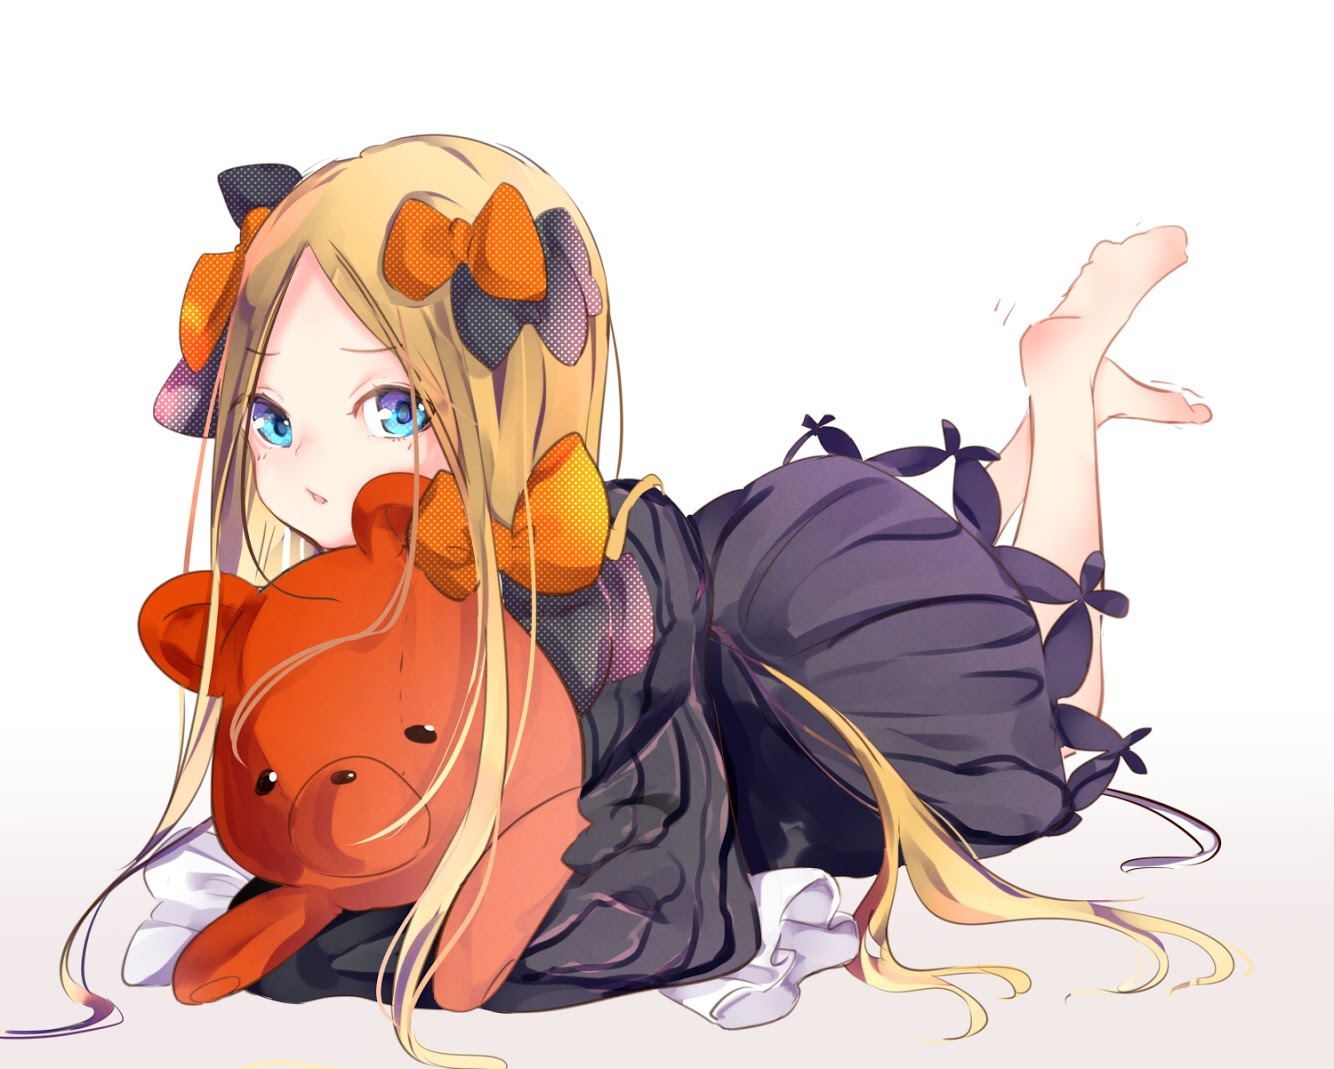 abigail_williams_(fate/grand_order) aqua_eyes barefoot blonde_hair bow fate/grand_order fate_(series) goth-loli loli lolita_fashion long_hair maimura teddy_bear white